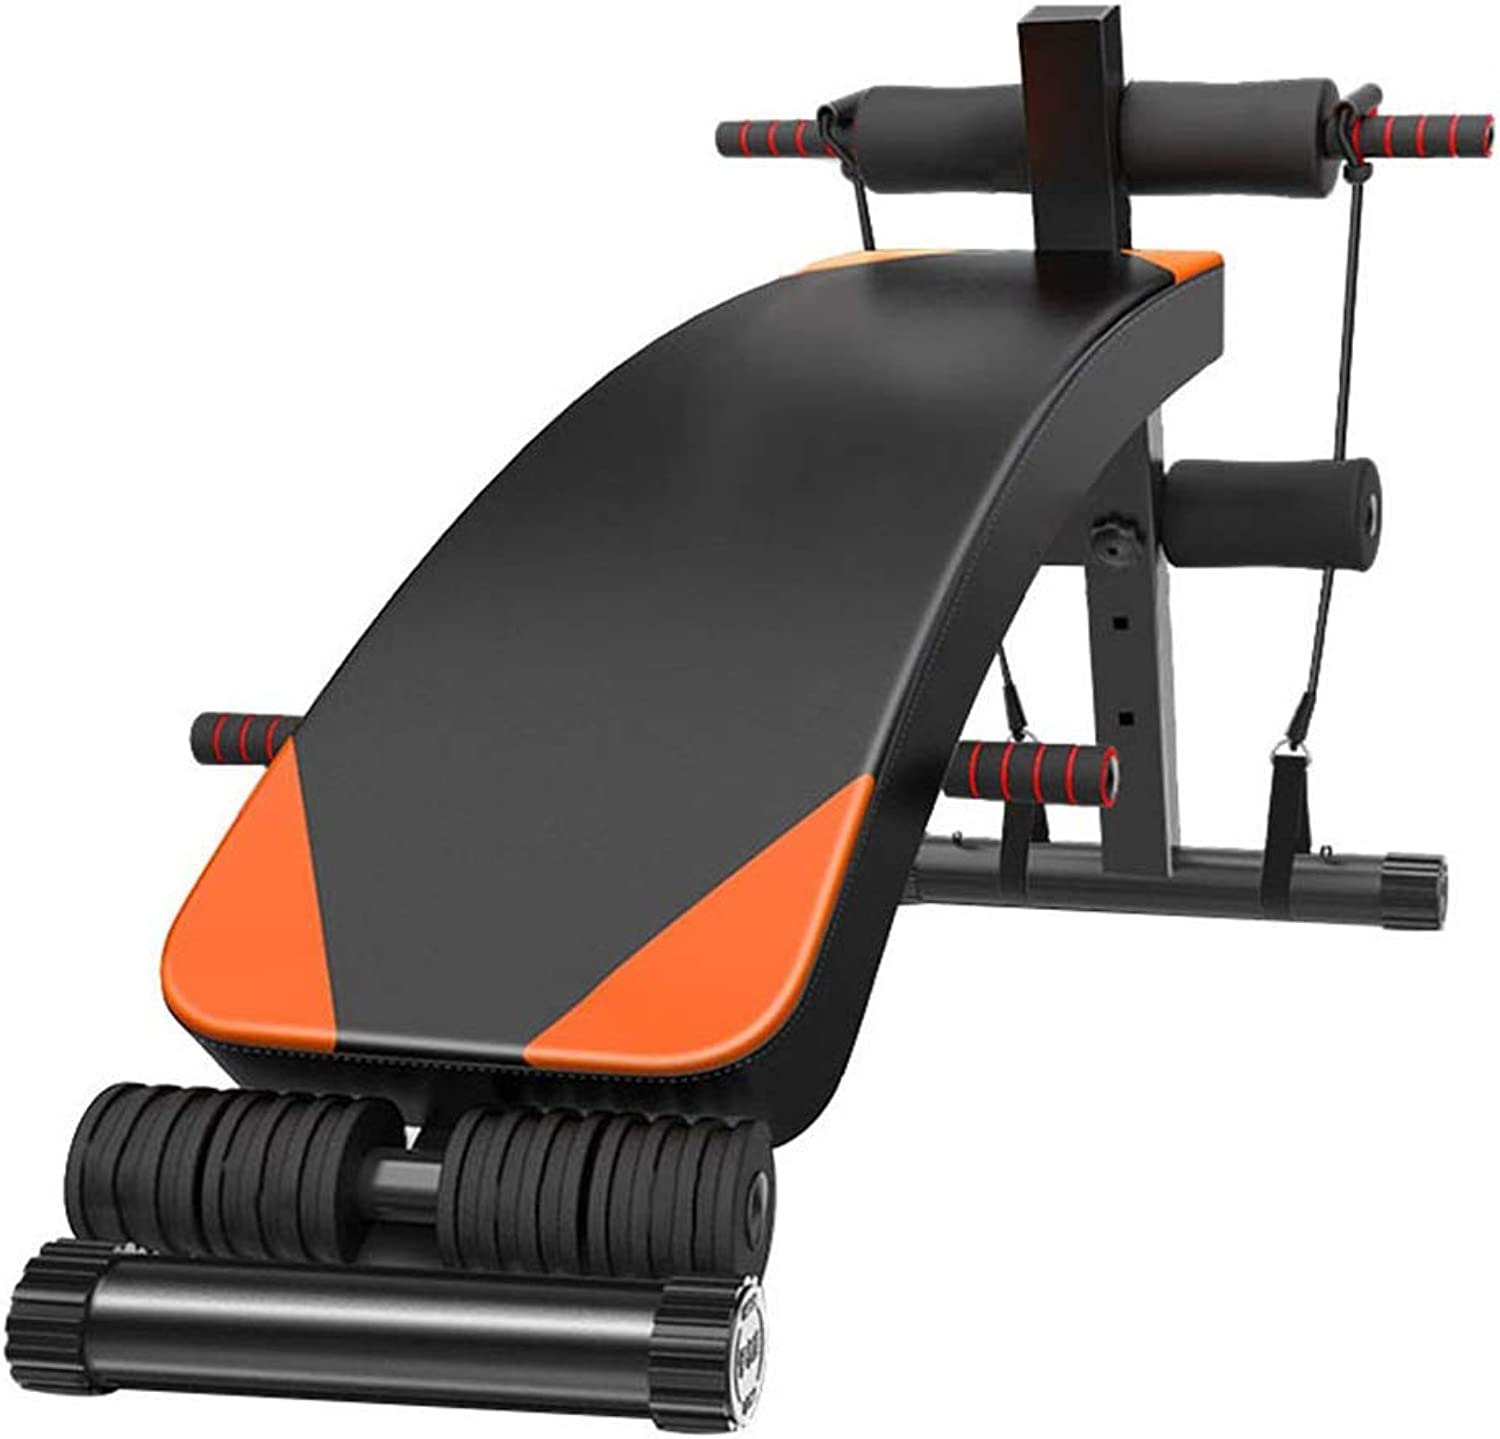 SitUp Board Adjustable Bench Foldable Suitable for Use in Homes and Offices Safer Training Safe LoadBearing 150kg